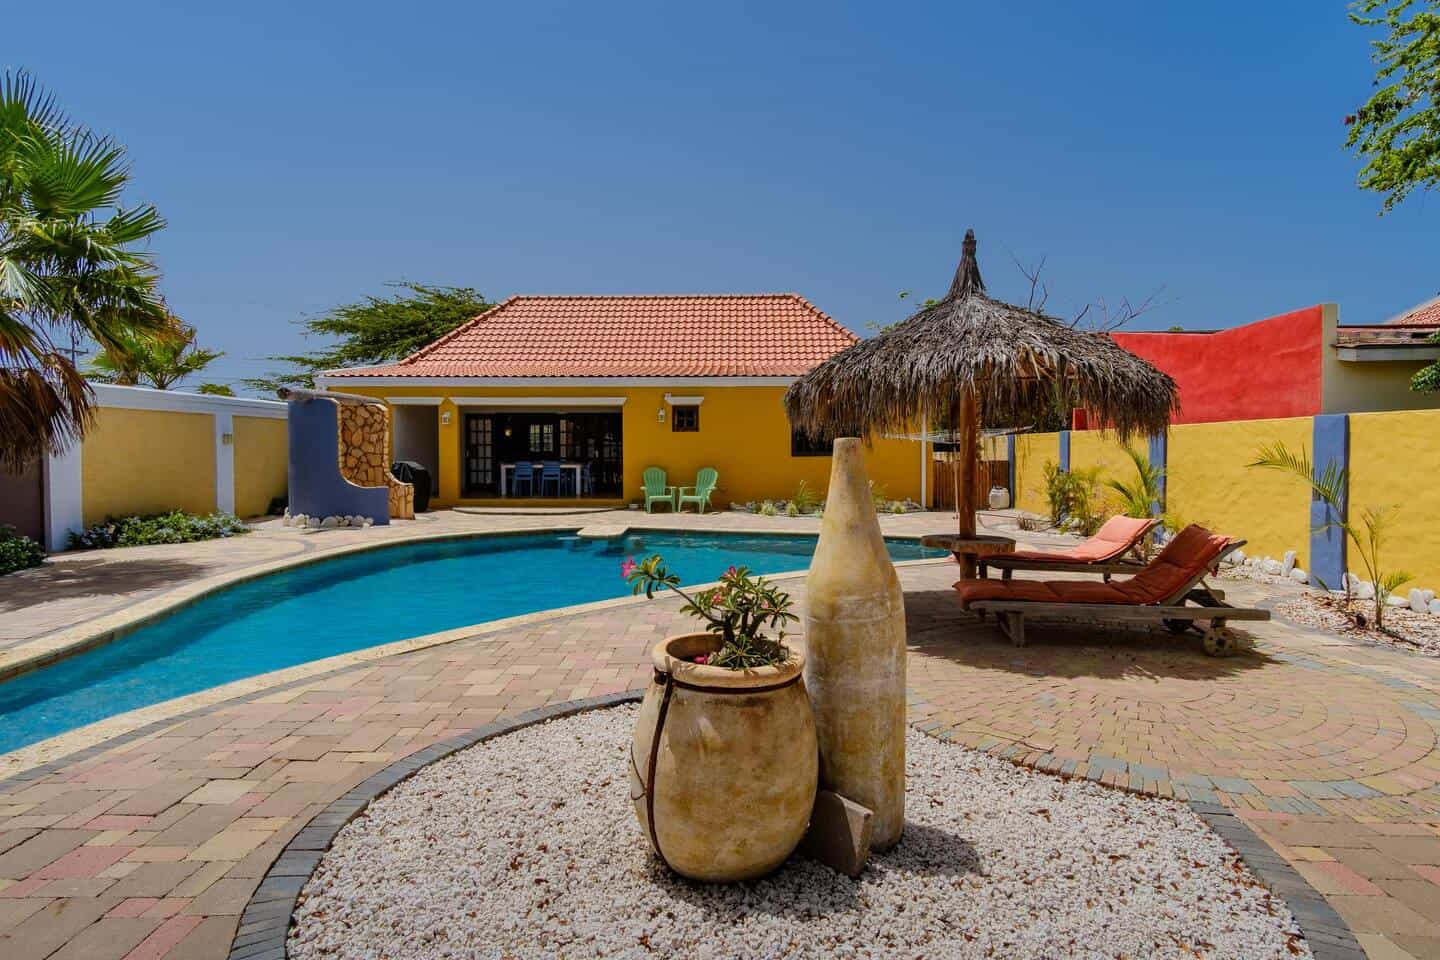 Image of Airbnb rental in Aruba